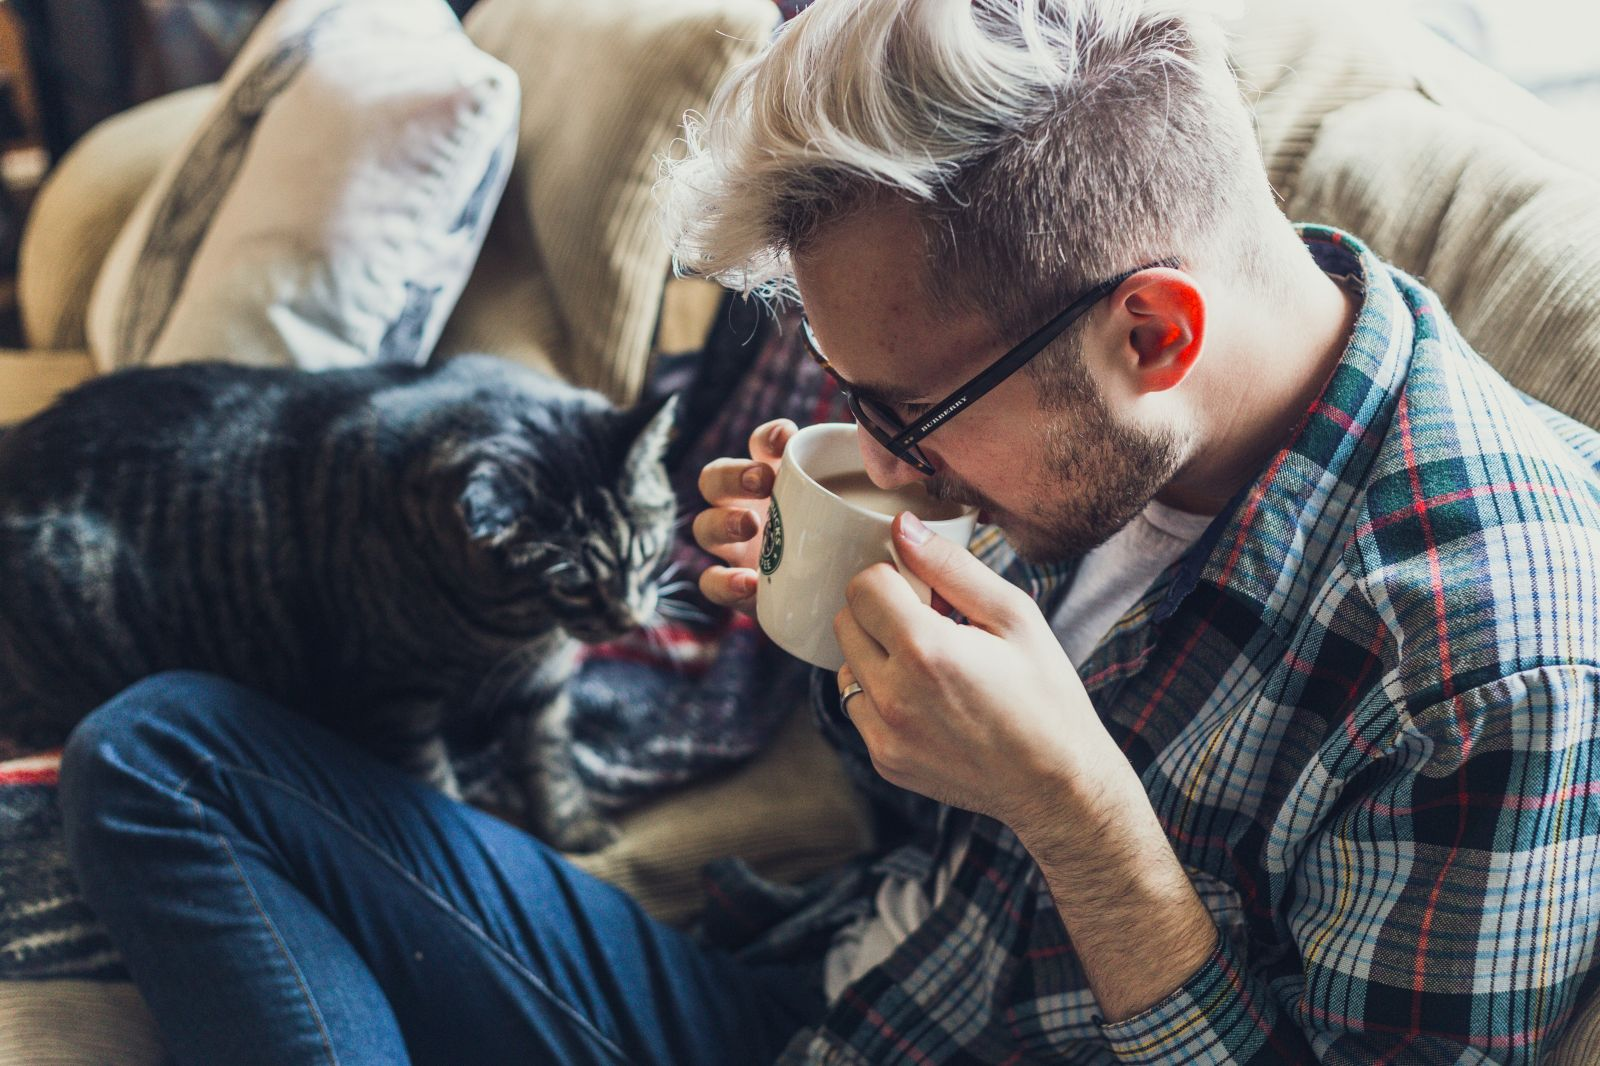 man drinking coffee on couch with cat